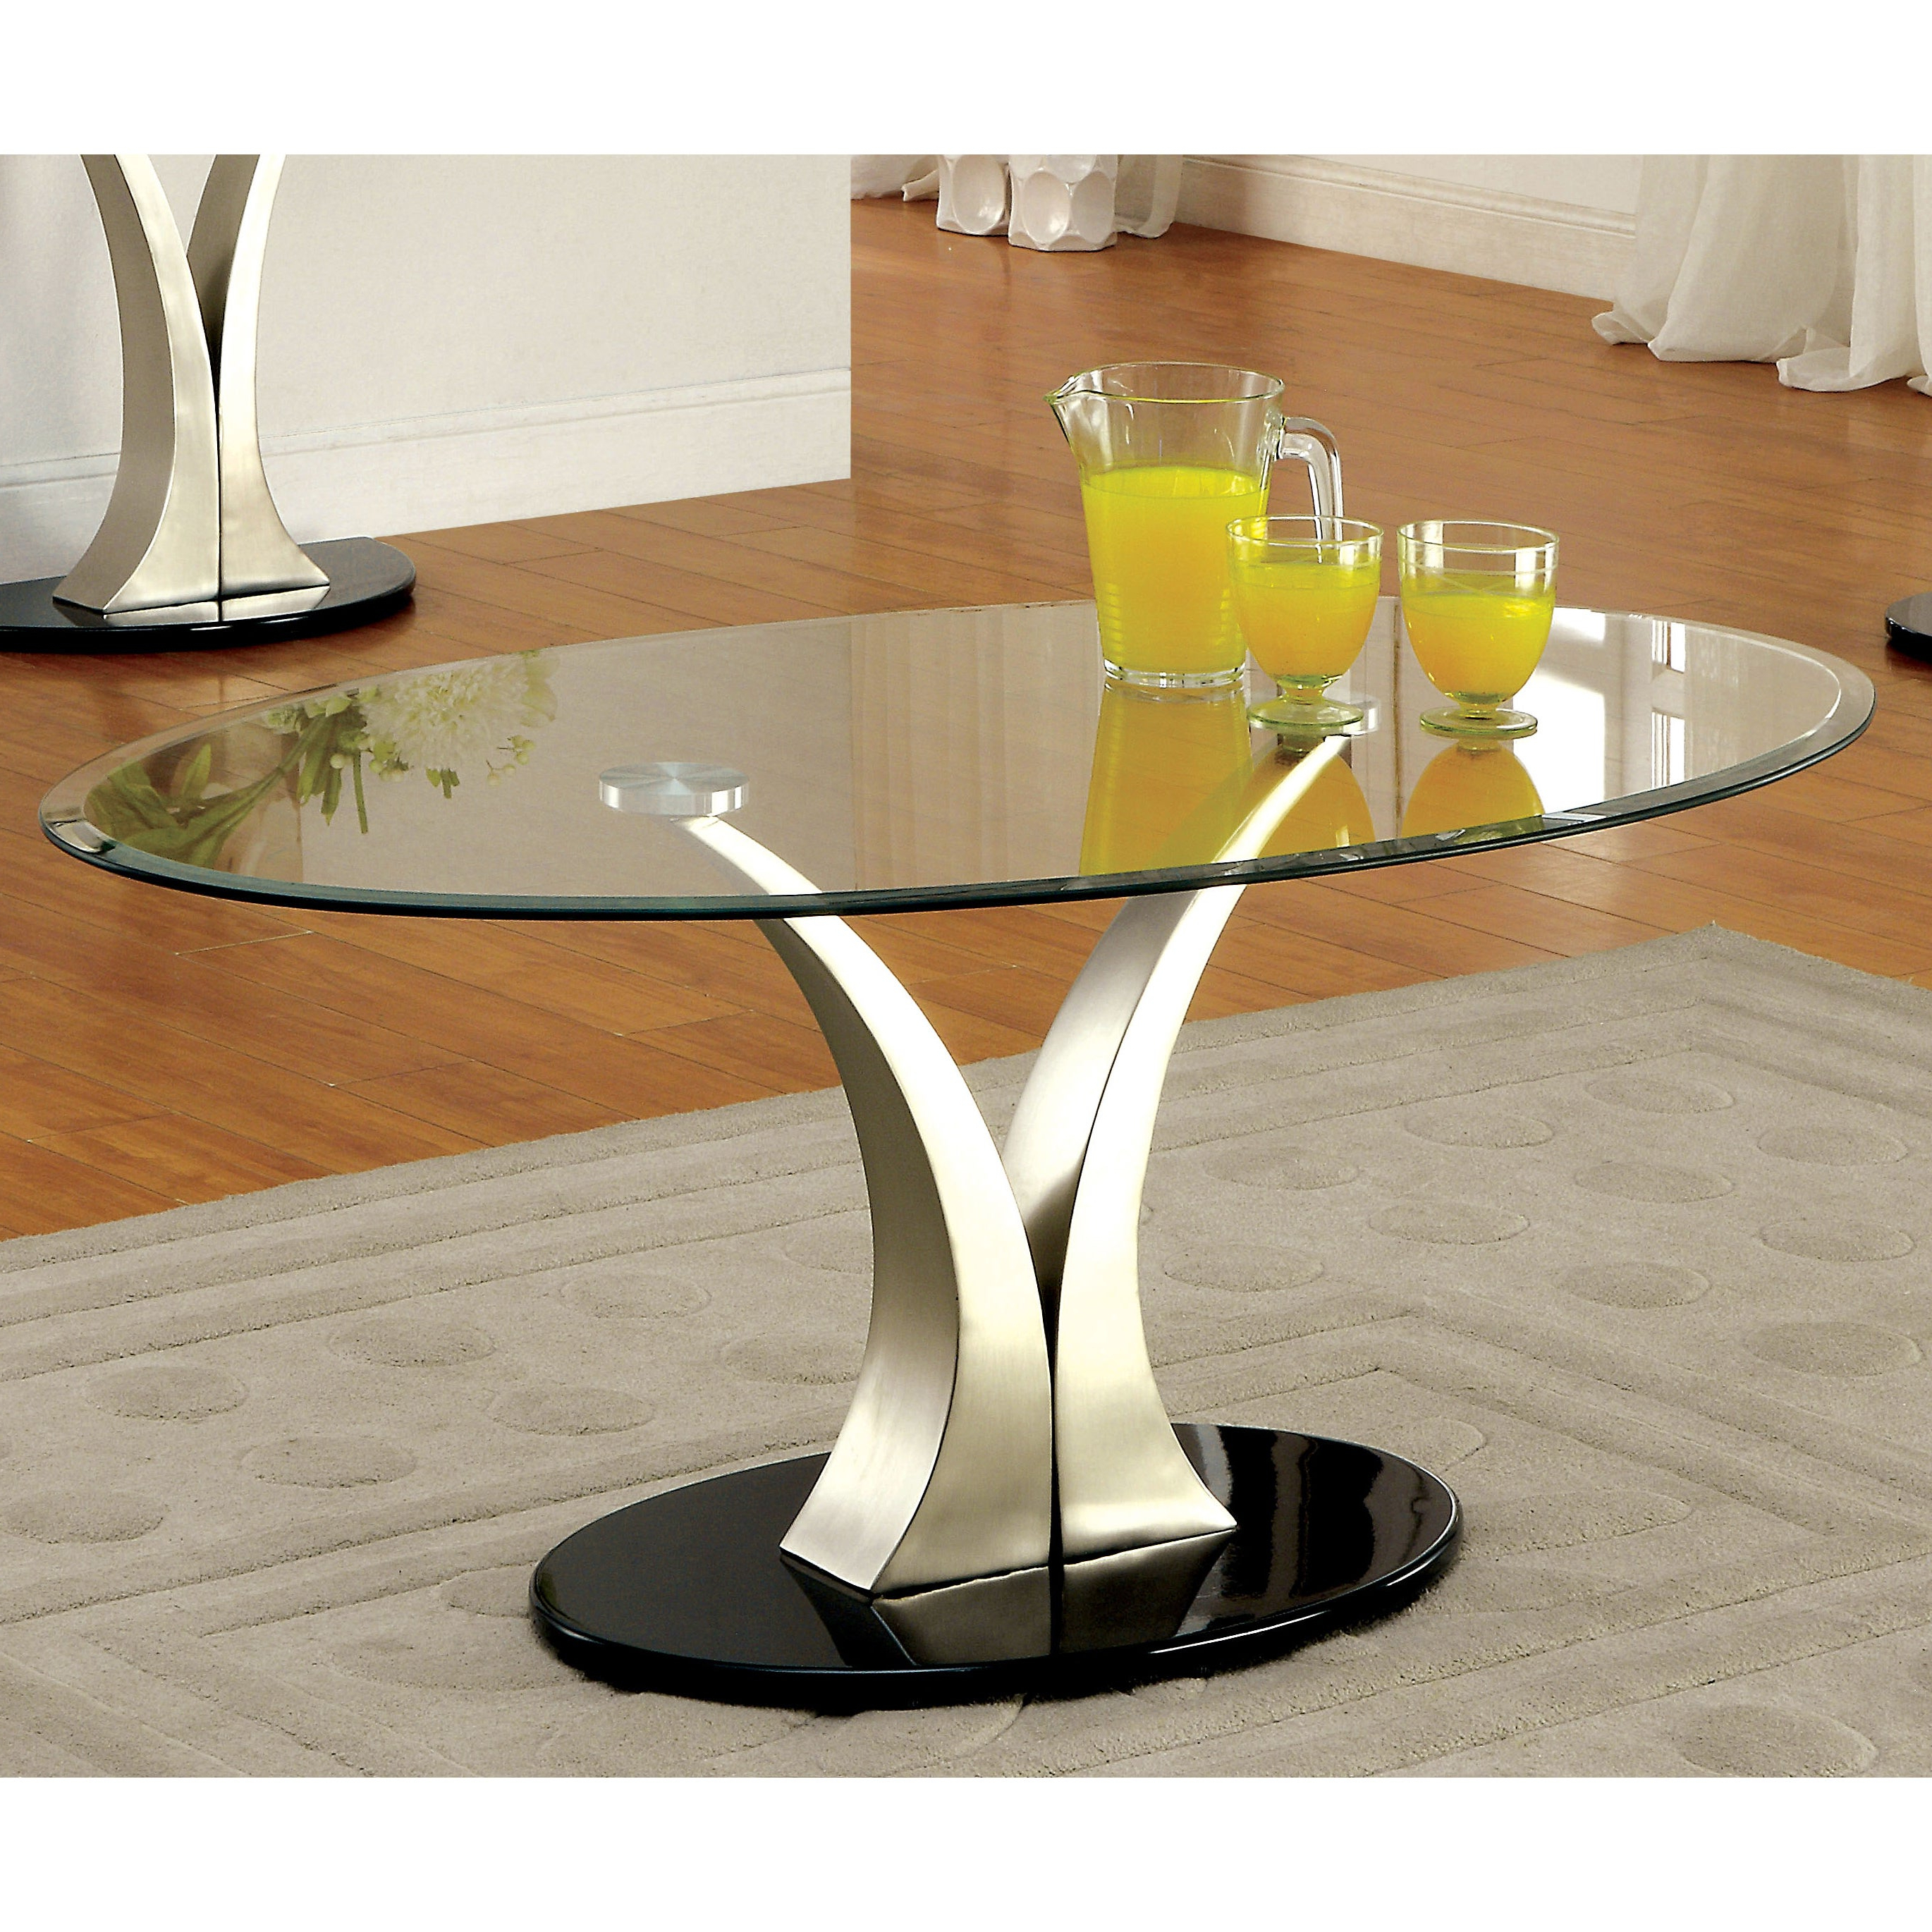 Velma Modern Satin Plated Coffee Tablefoa With Well Known Carmella Satin Plated Coffee Tables (Gallery 10 of 20)